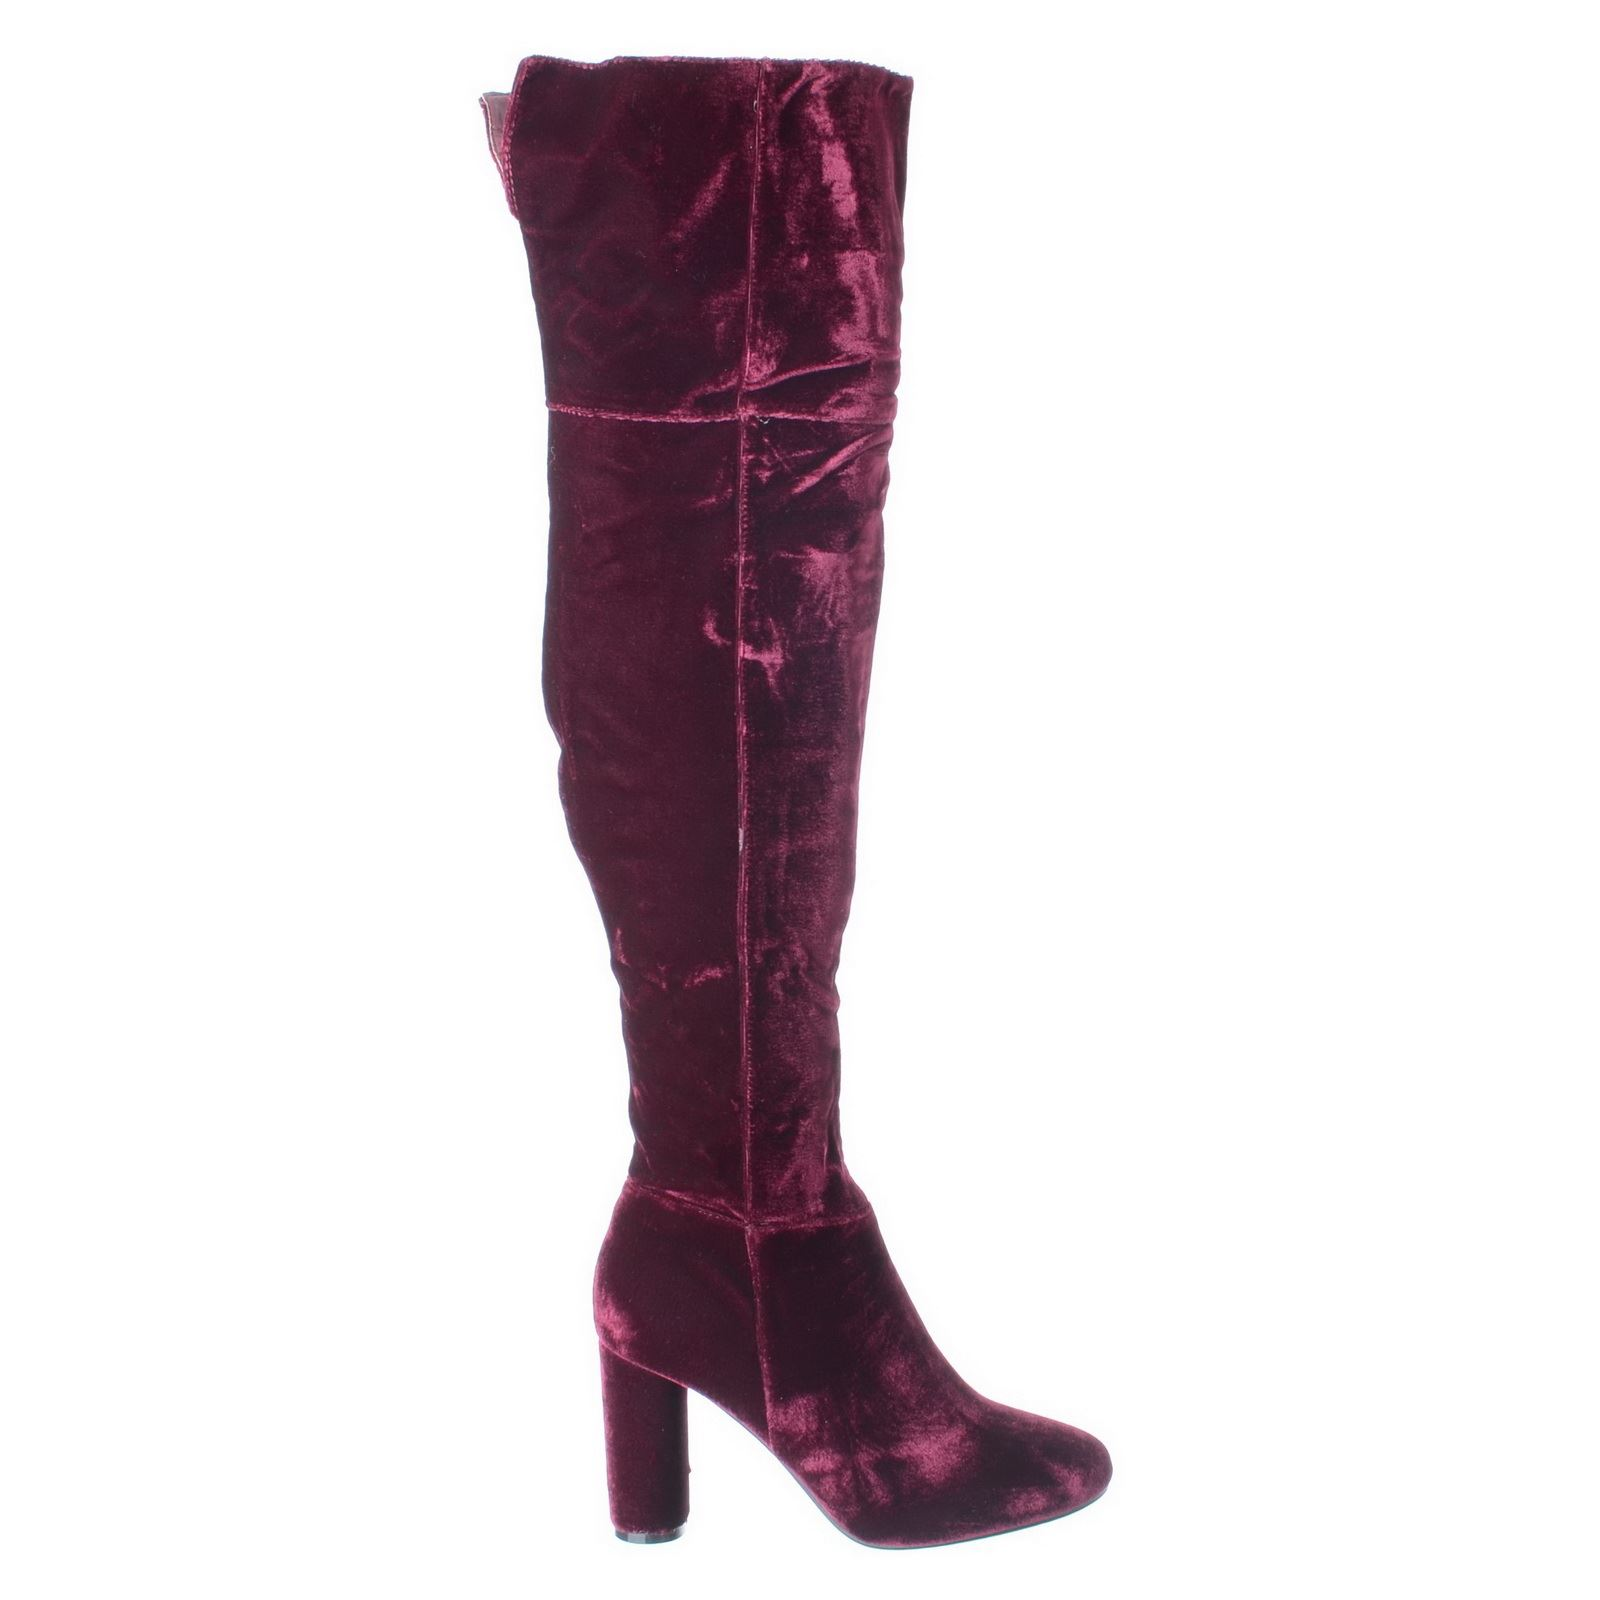 WOMENS LADIES BLOCK HEEL OVER THE KNEE THIGH HIGH SUEDE VELVET BOOTS SHOES SIZE